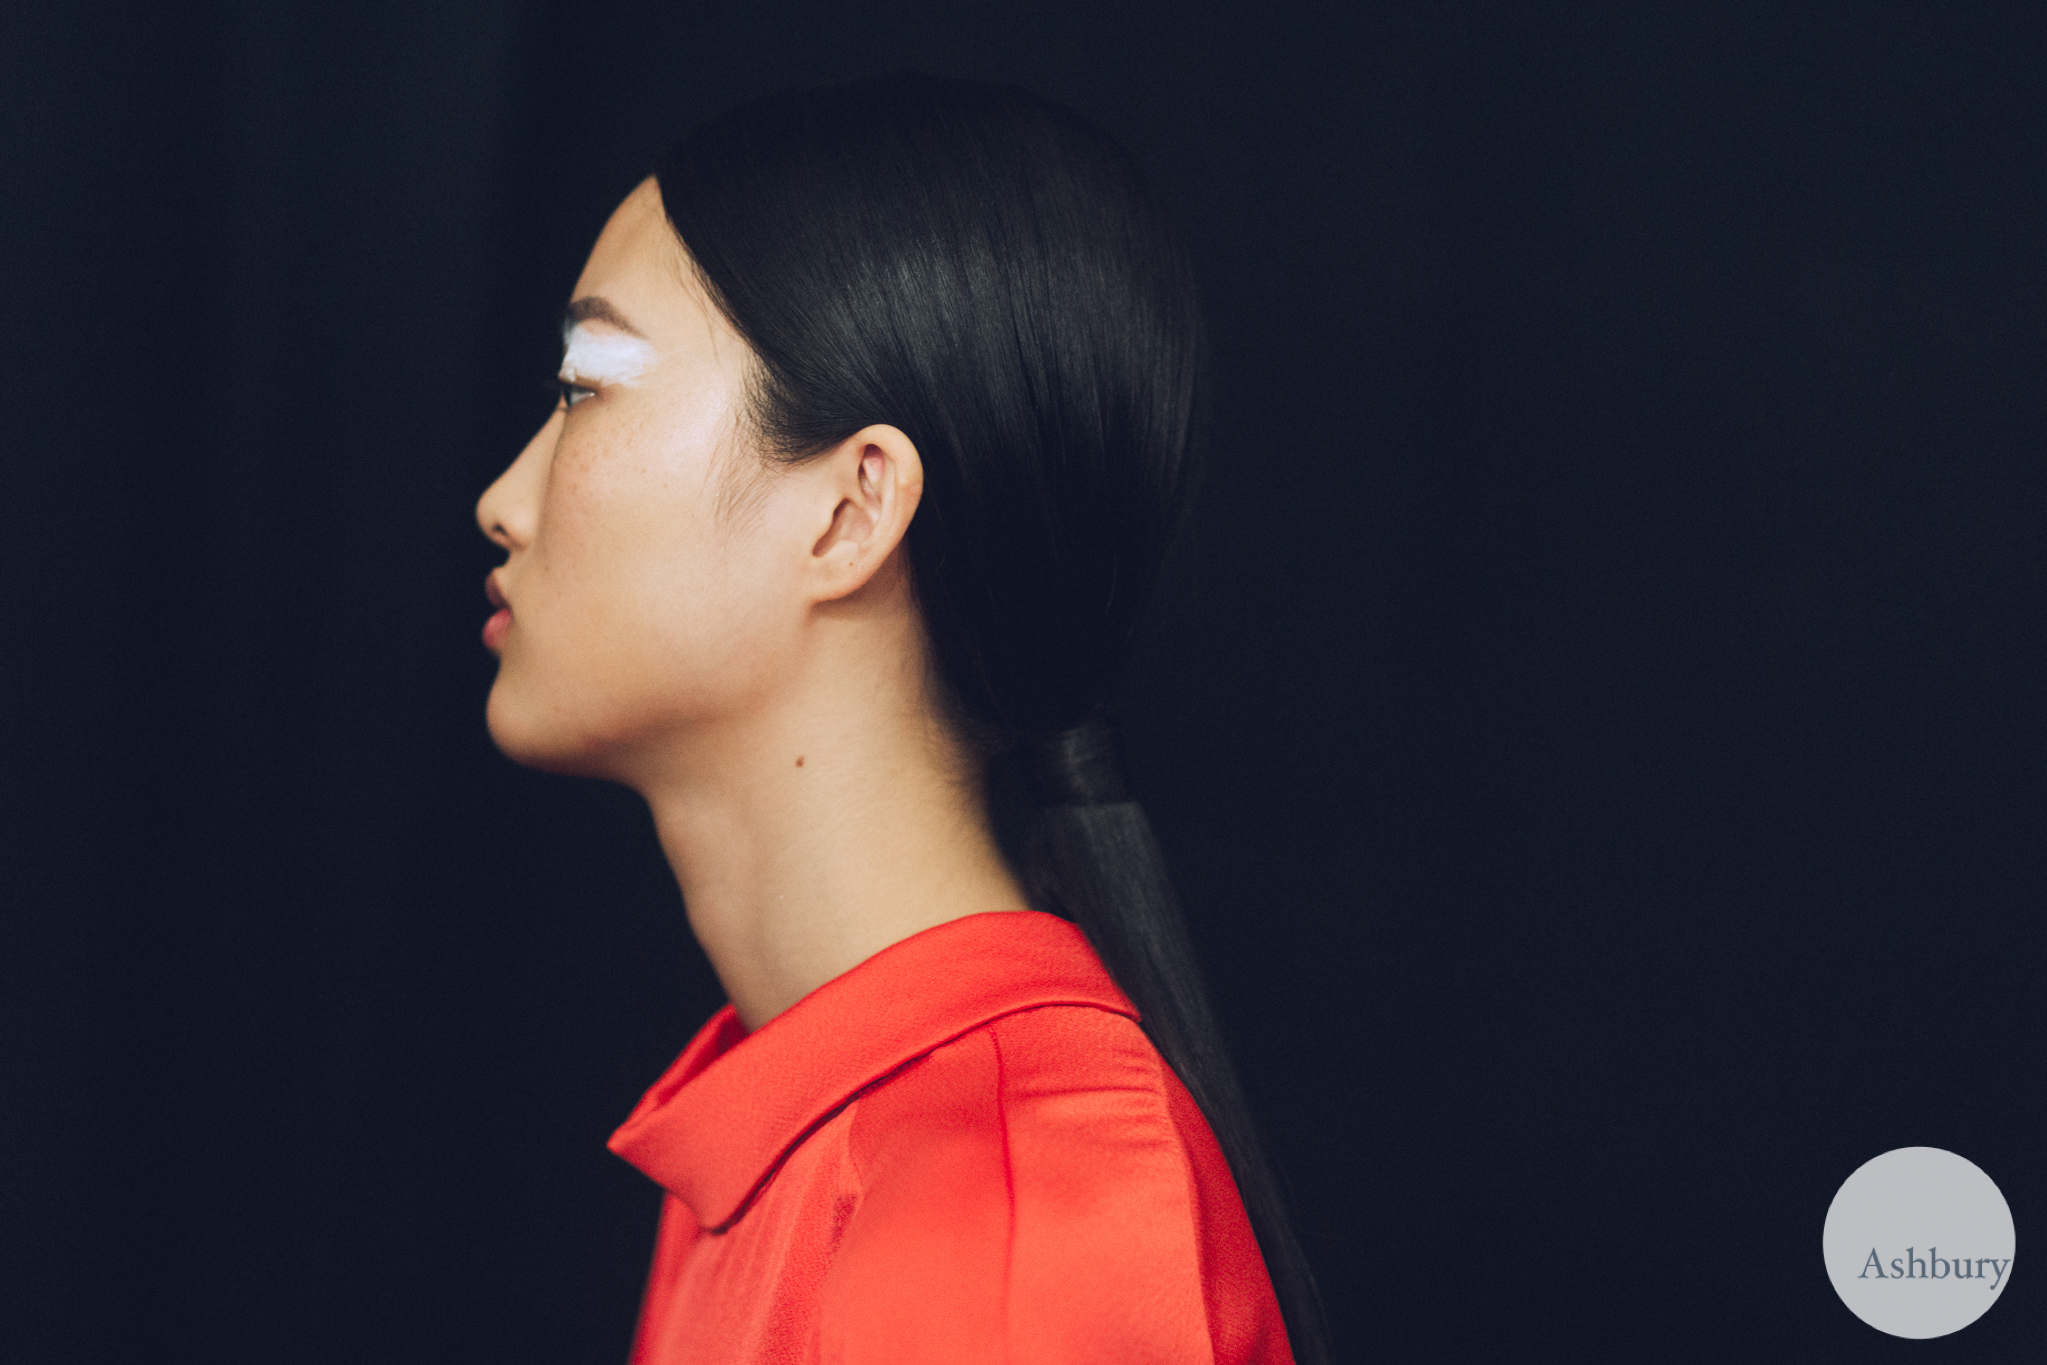 kenzo backstage fall/winter 2015 - jing wen 2